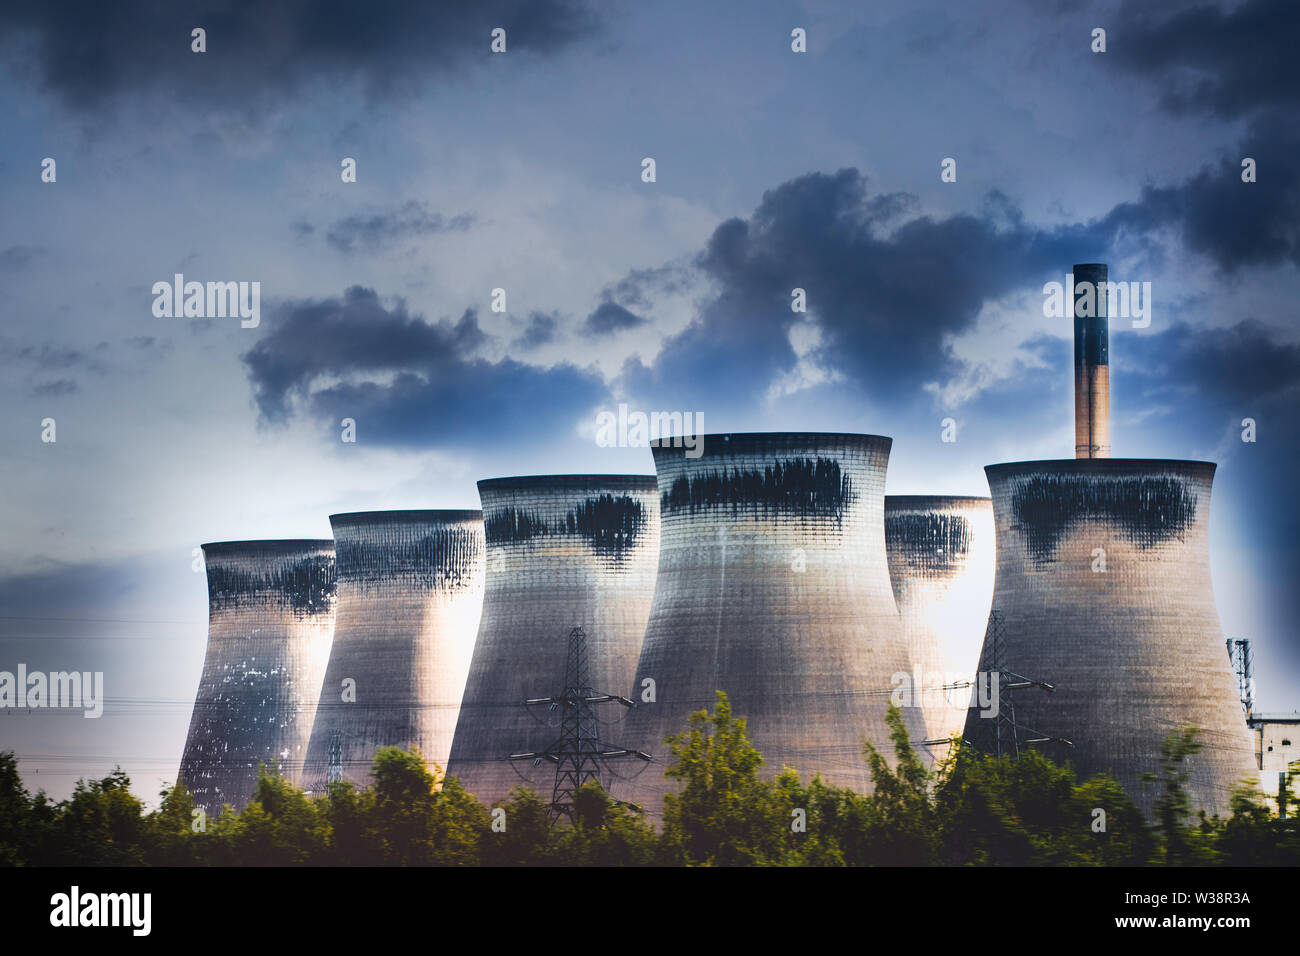 Energy Power Plant chimneys and cooling towers with dramatic sky. Polluting clean air showing climate change concepts...global warming Stock Photo